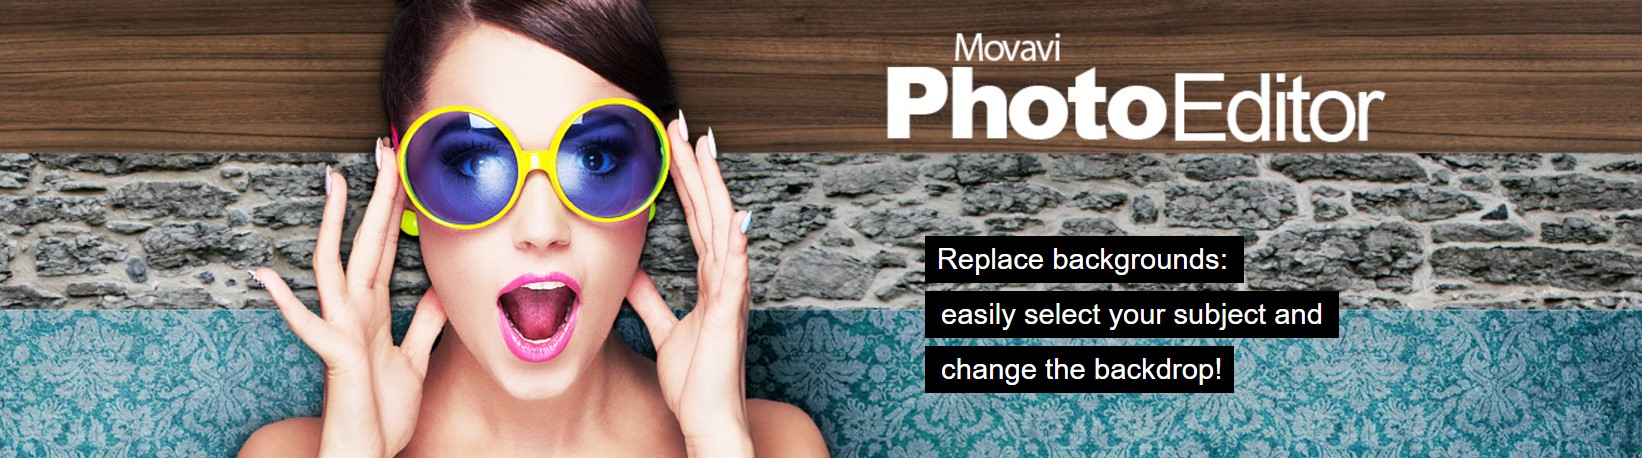 Movavi Photo Editor Review: Easiest Photo Software